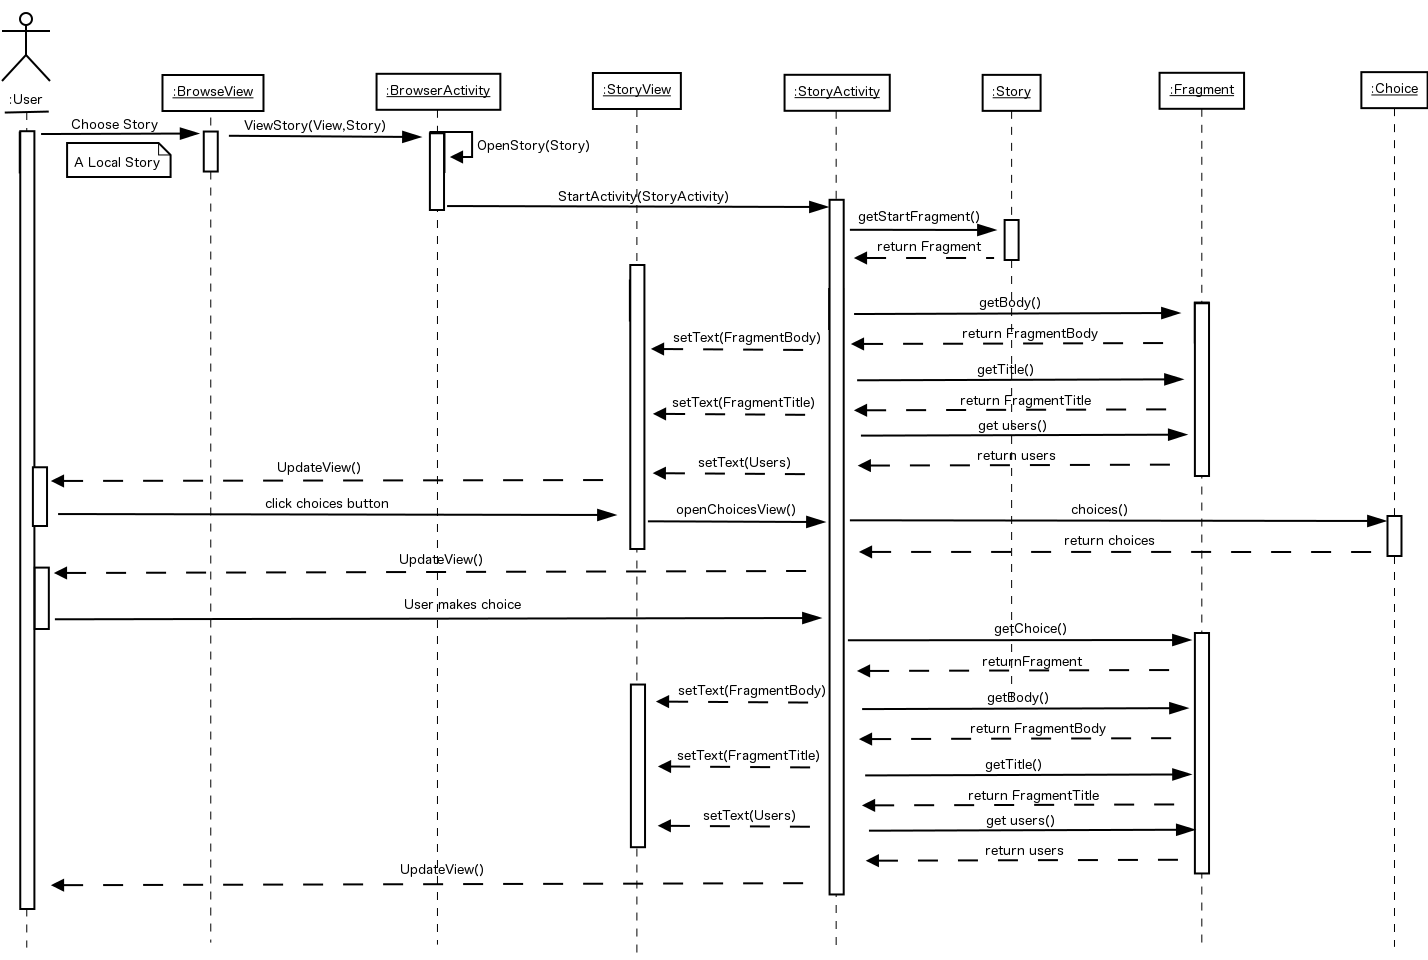 Uml sequence diagram choices online schematic diagram sequence diagram cmput301f13t05 team05 cyoa wiki github rh github com sequence diagram alt uml class diagram ccuart Image collections